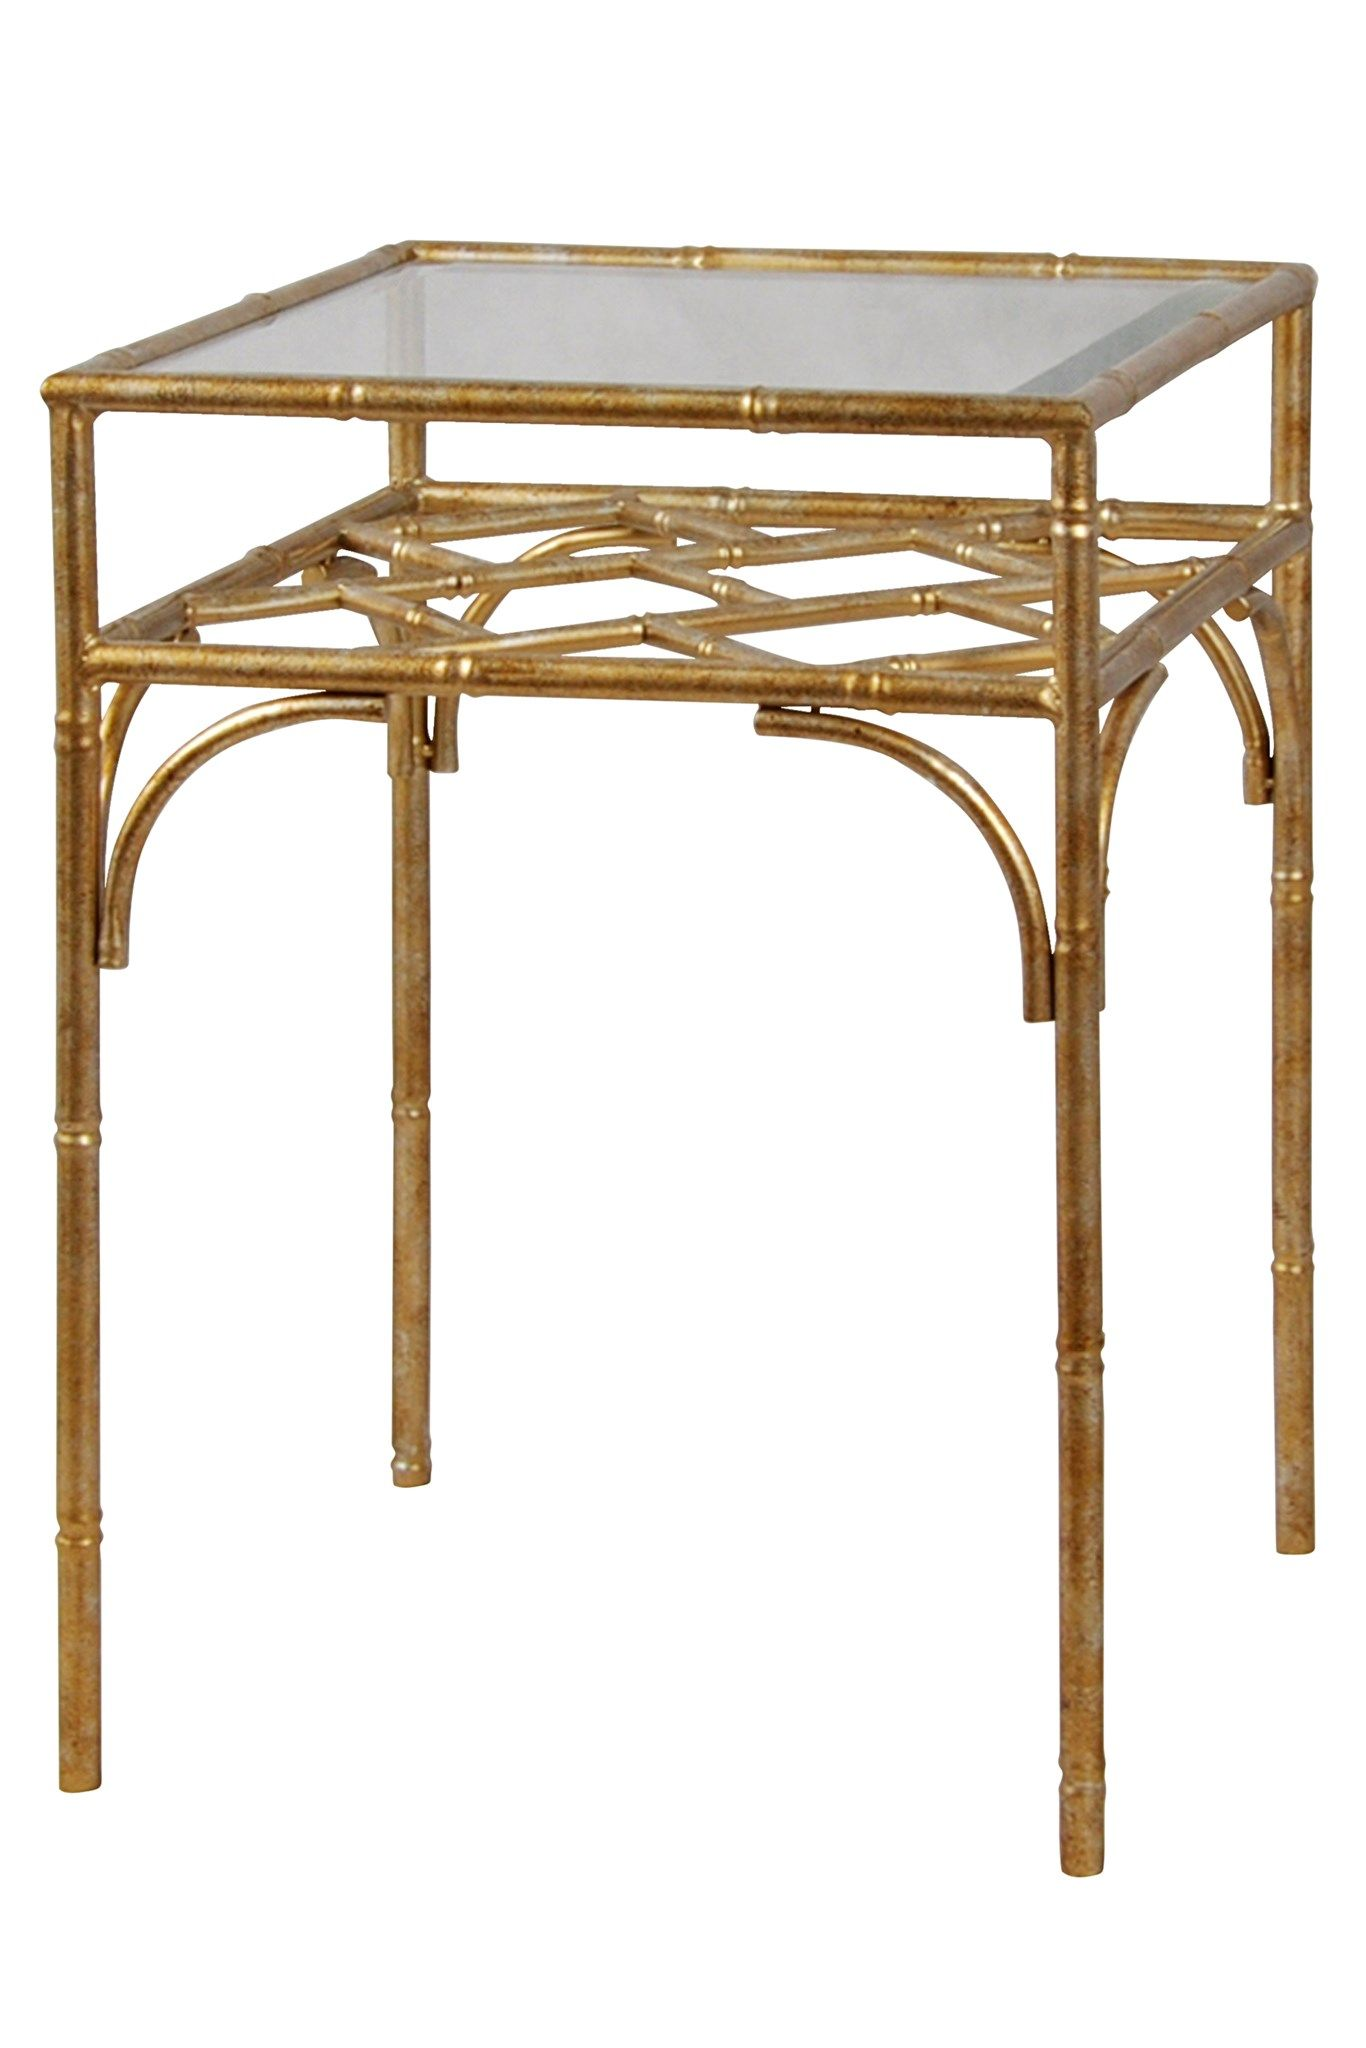 tempered glass accent table side tables metal pier one small local furniture navy end blue and white coffee bedside kmart tall marble large curtain rods gray target kids rugs